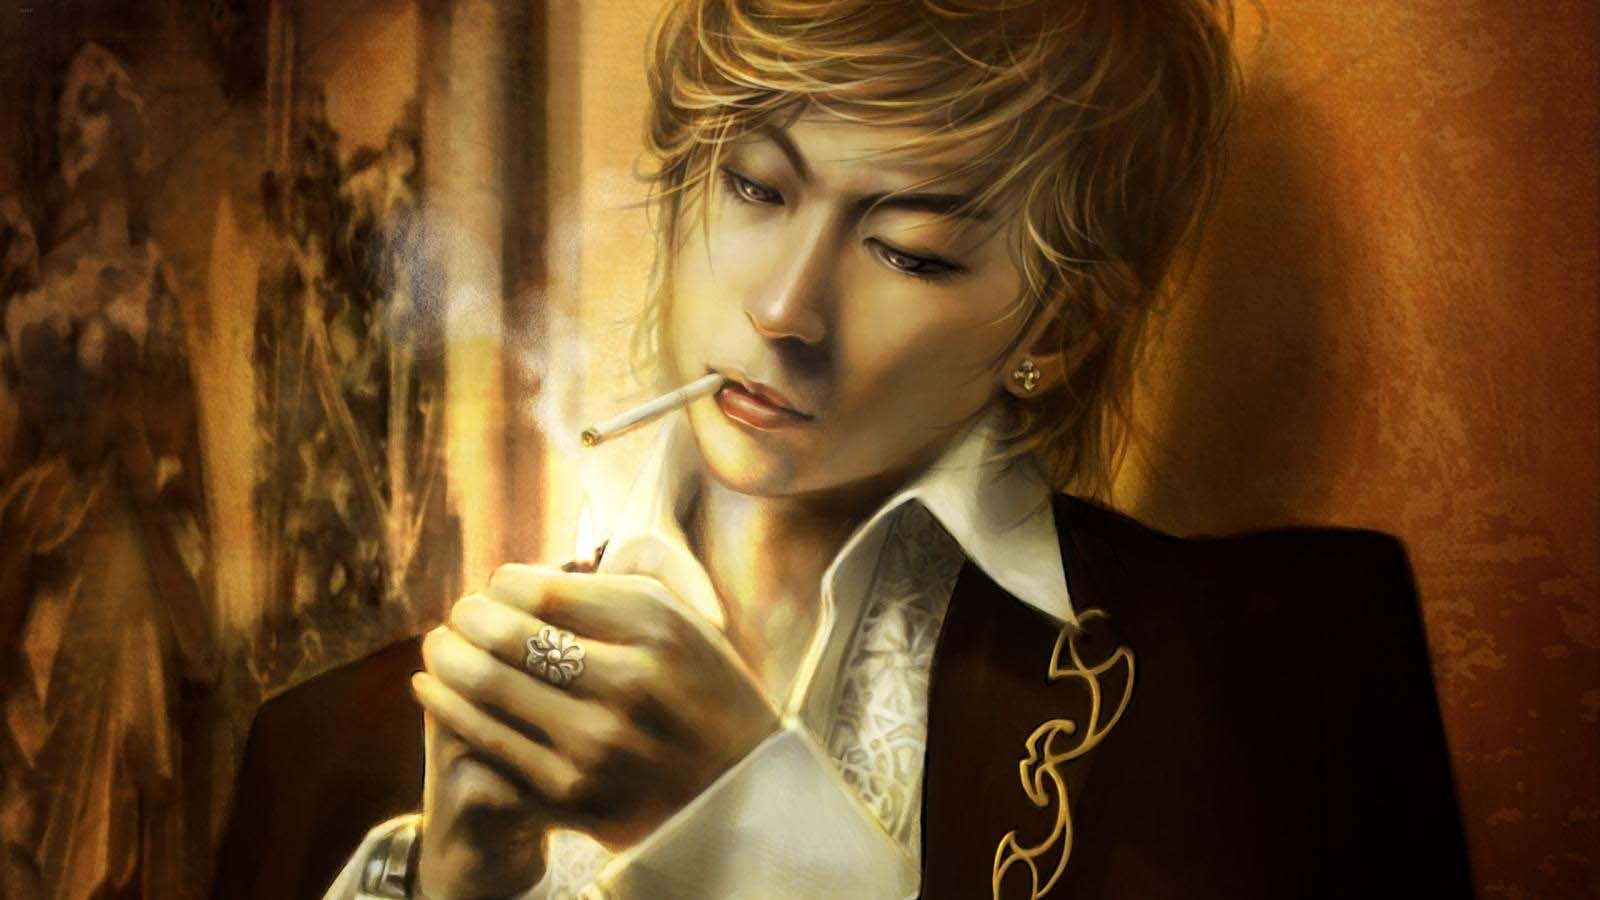 Smoking boy latest hd wallpapers free download